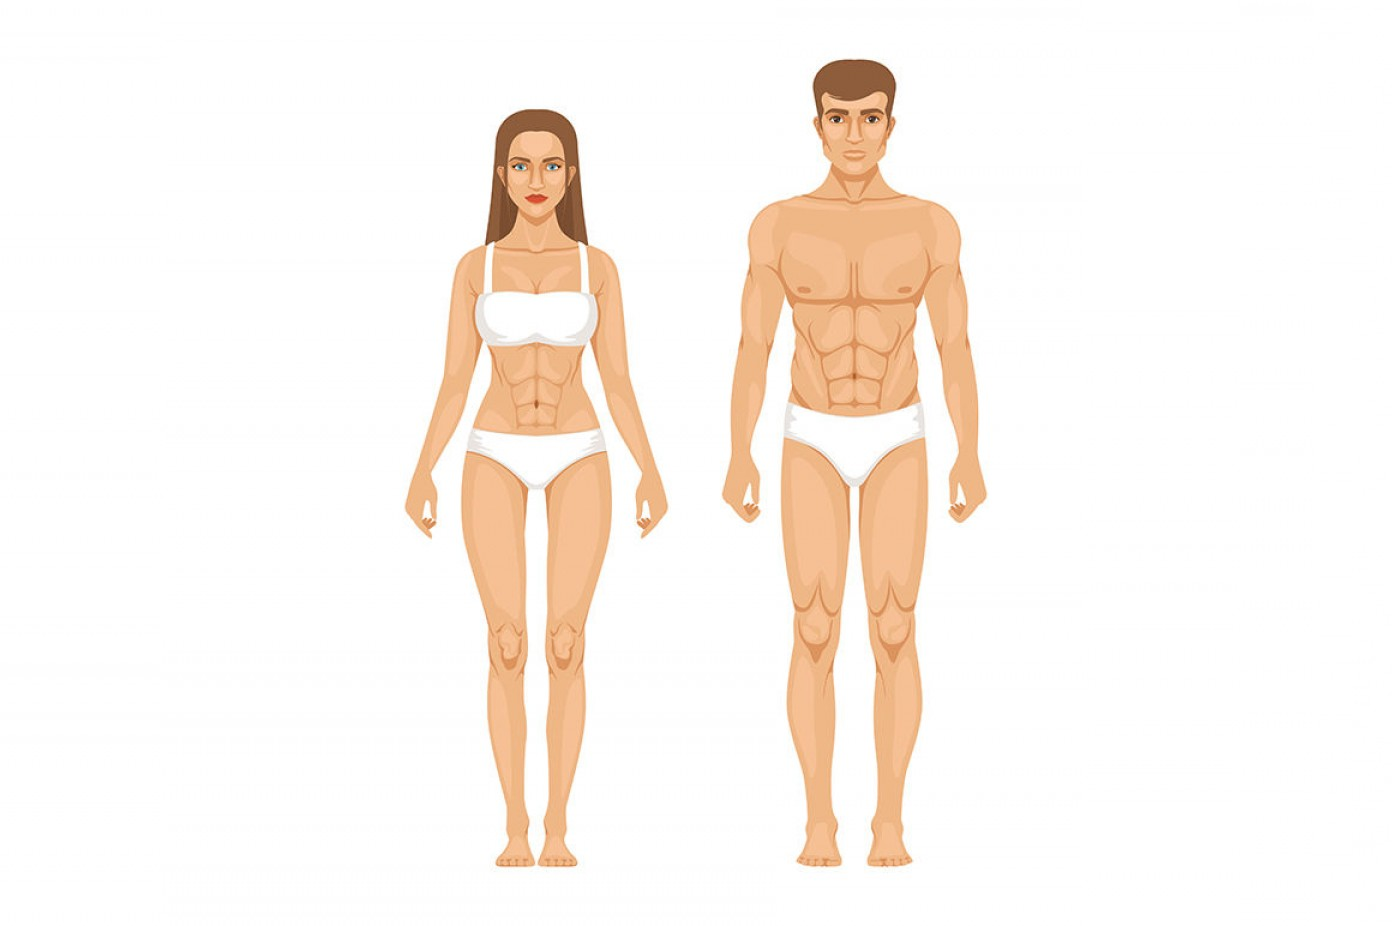 Female Parts Vector: Woman Body Parts Human Anatomy Vector Illustrations Isolate On White